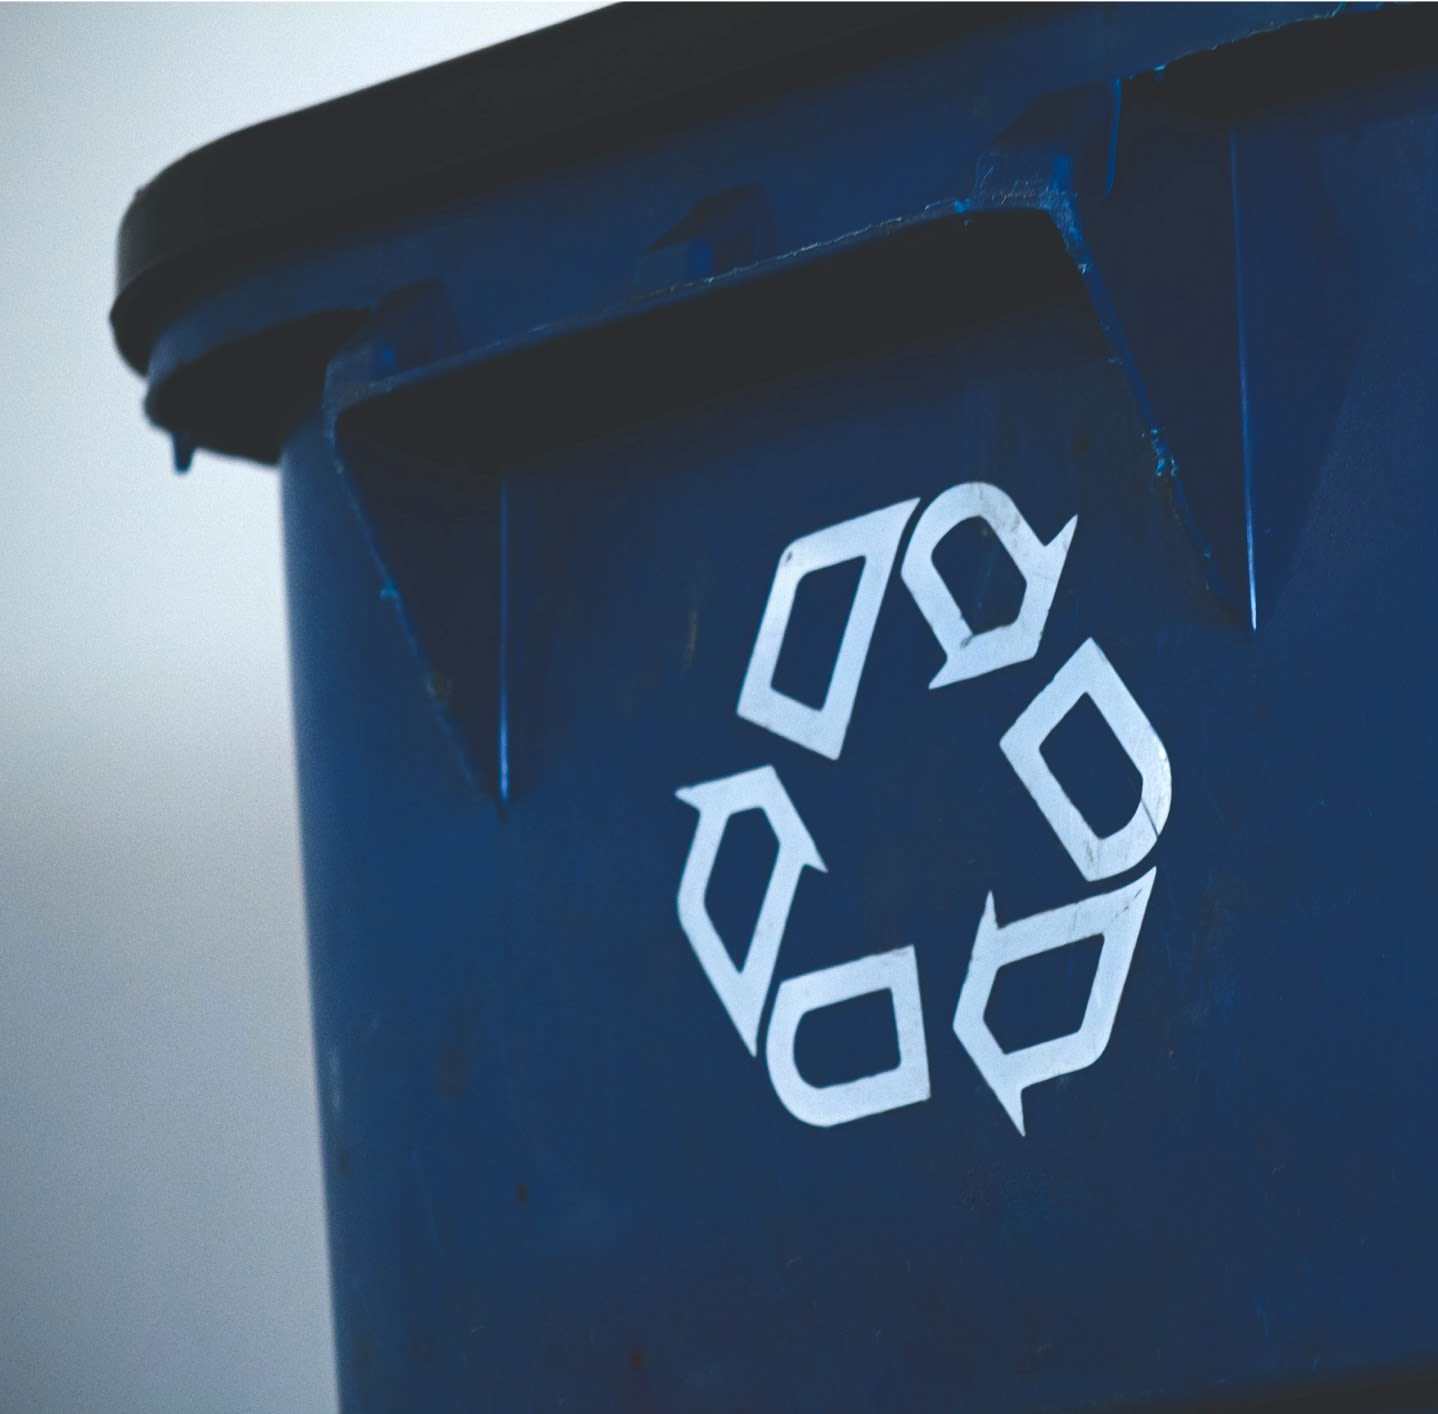 A close-up view of a blue recycling bin with a white recycling symbol of three arrows forming a triangle